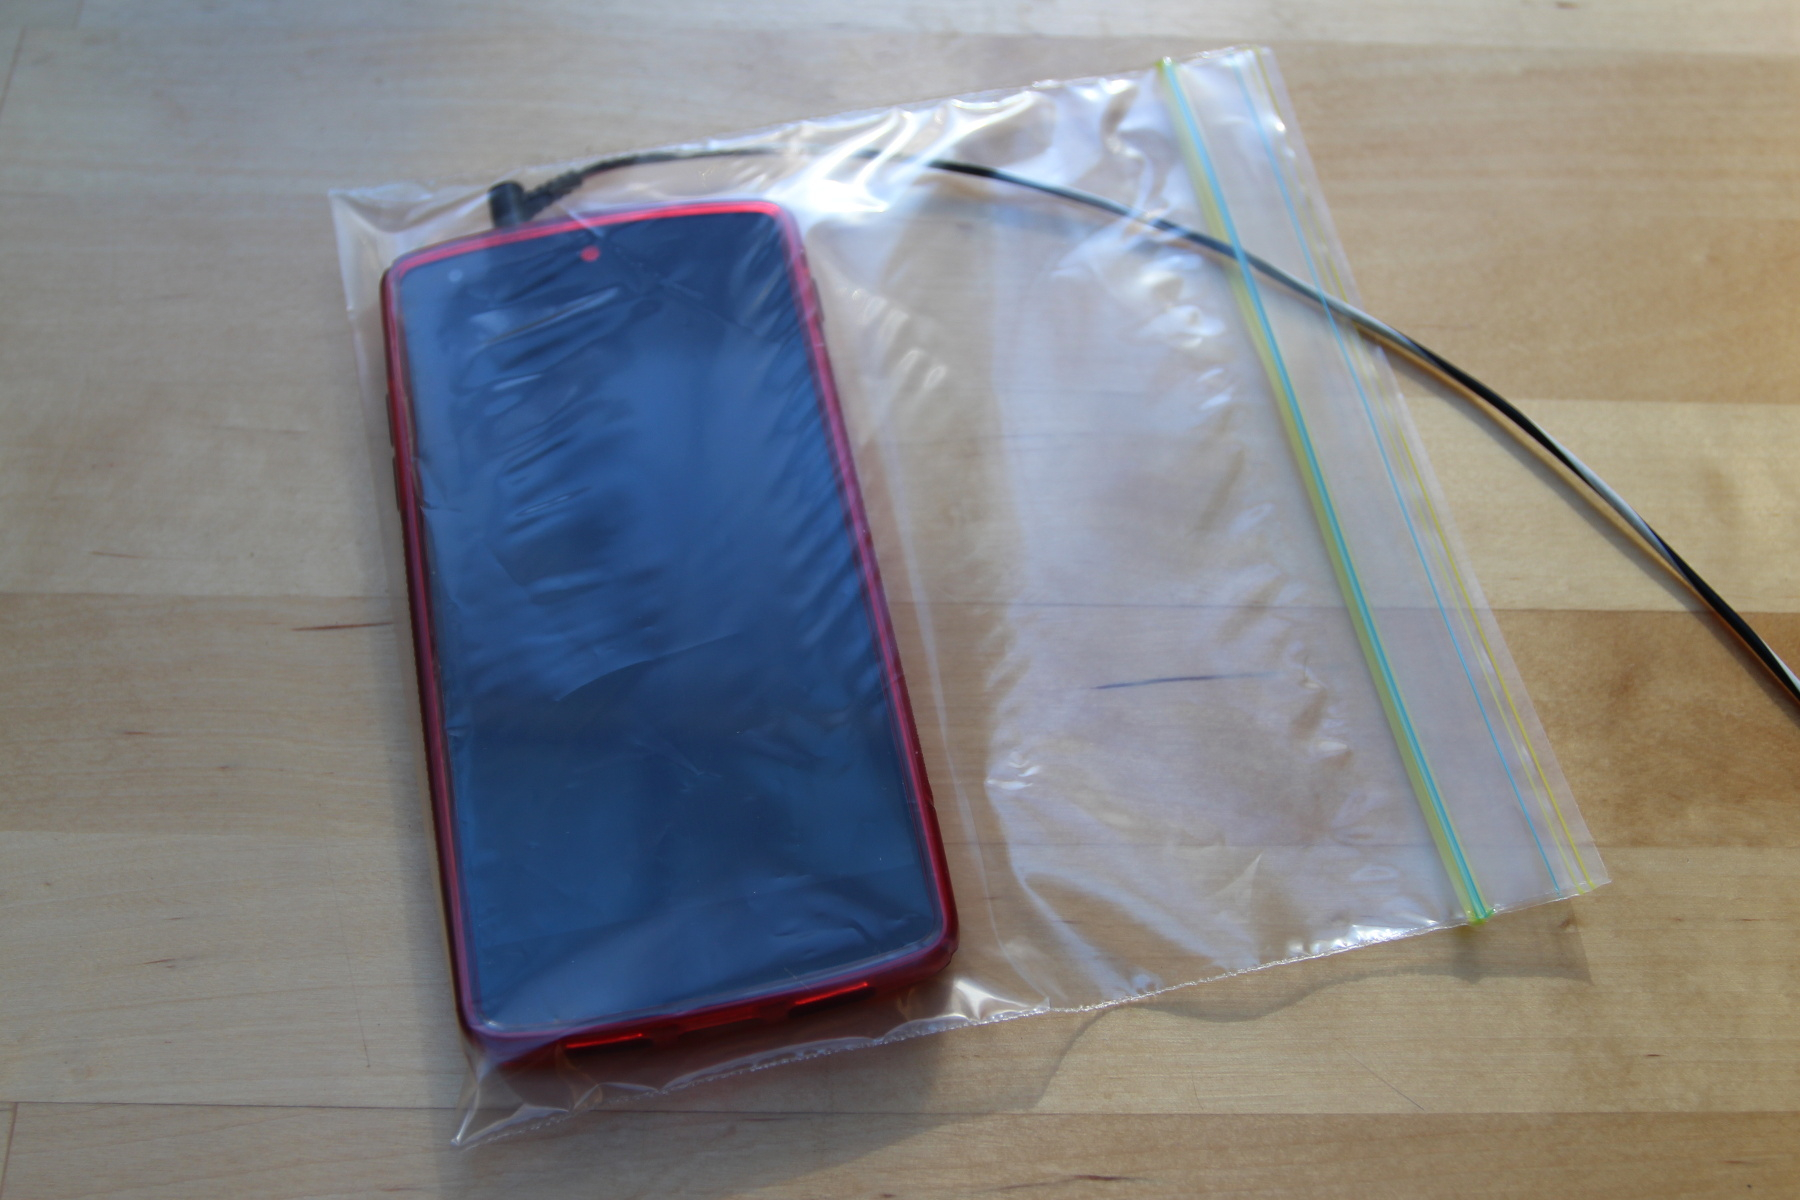 Nexus 5 in Sandwich Bag